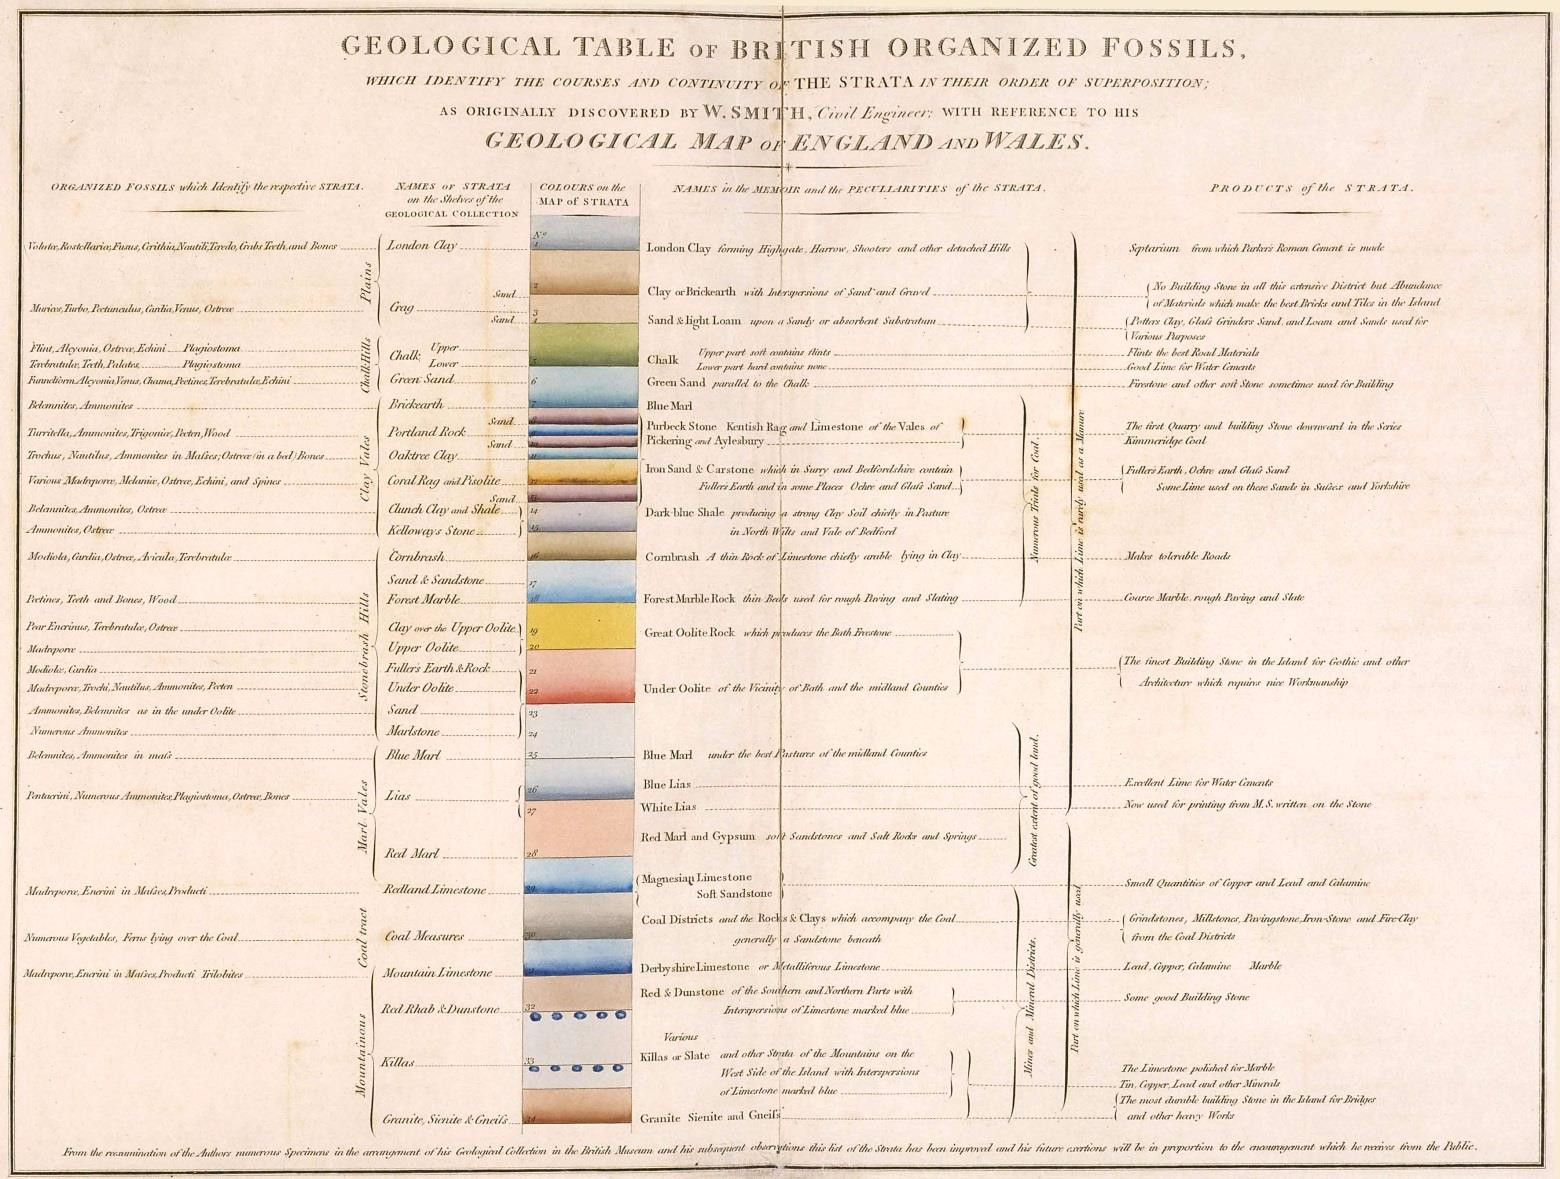 Smith's Geological Table of British Organized Fossils This table, with a stratigraphic column coloured to match the 1815 map, includes columns referring to the Names of Strata on the Shelves of the [i.e. Smith's] Geological Collection, the Names in the Memoir and the Peculiarities of the Strata, the Products of the Strata, and the Organized Fossils which Identify the respective Strata.